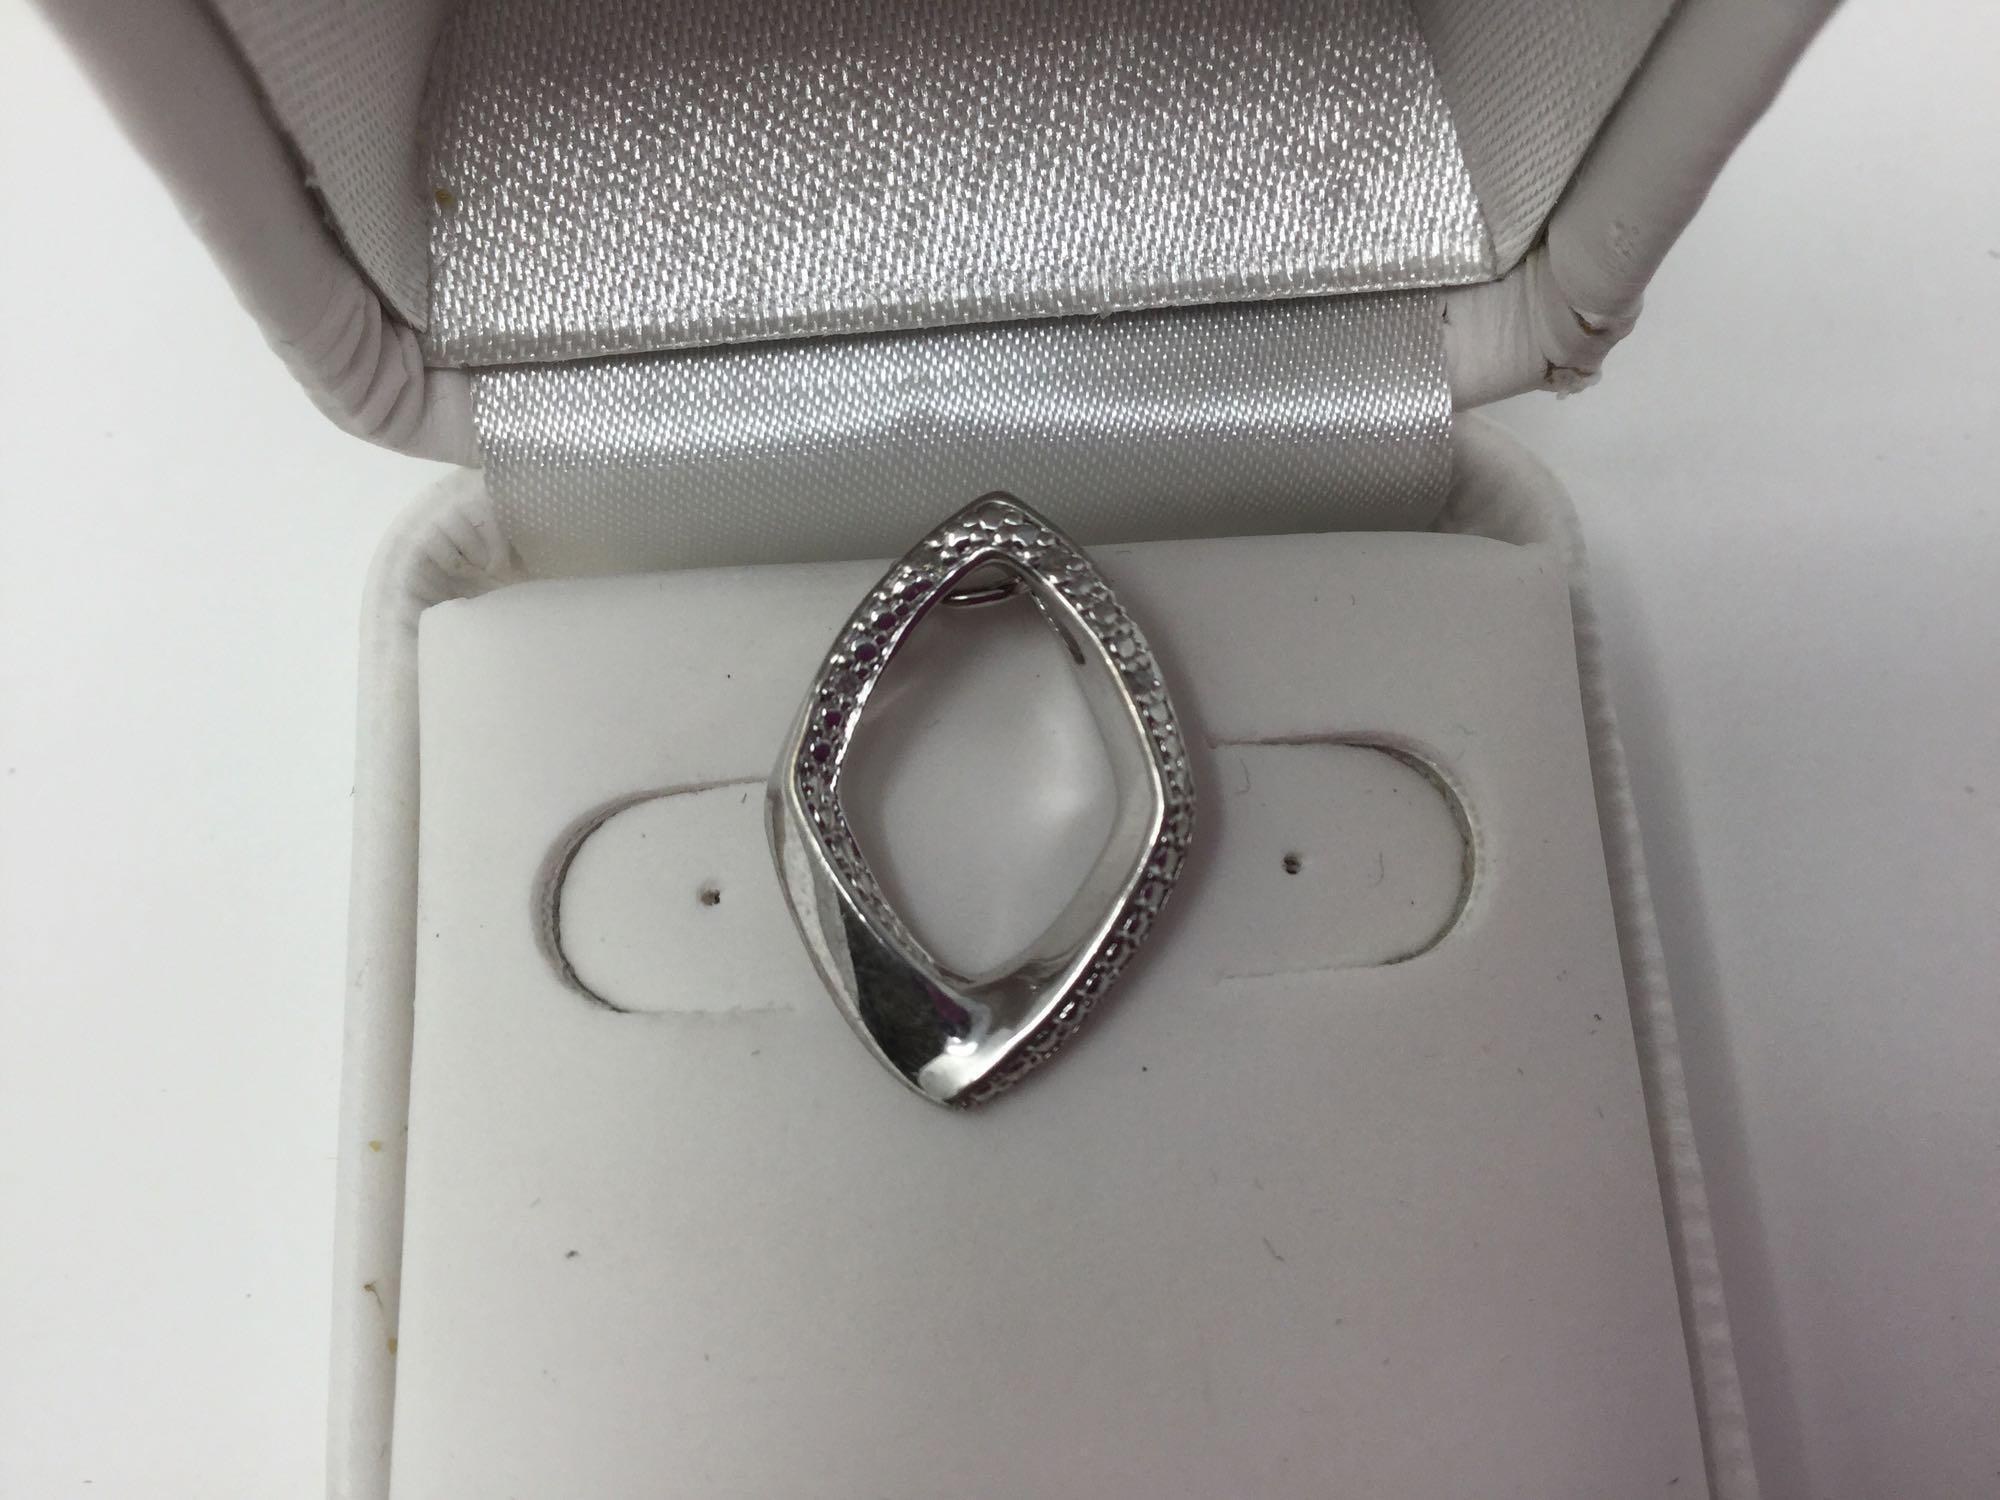 Lot 12 - Sterling Silver Pendant - Retail $80